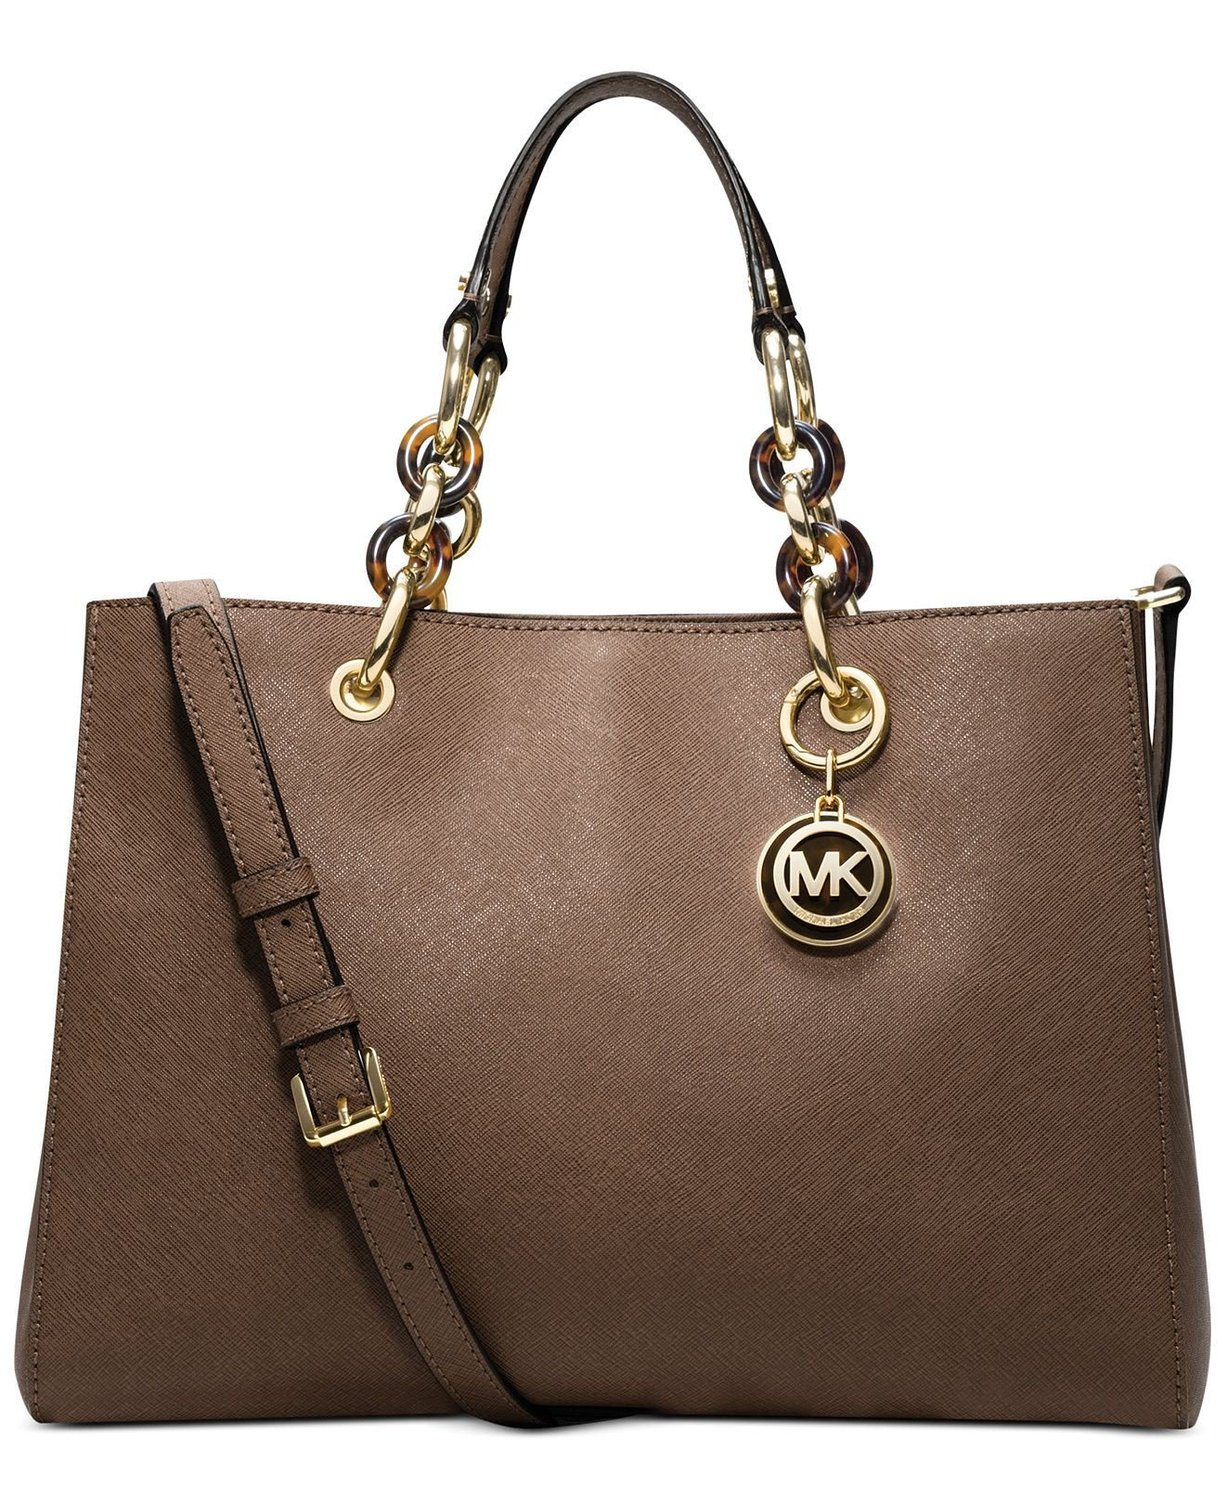 michael kors cynthia medium satchel in dark dune brown. Black Bedroom Furniture Sets. Home Design Ideas